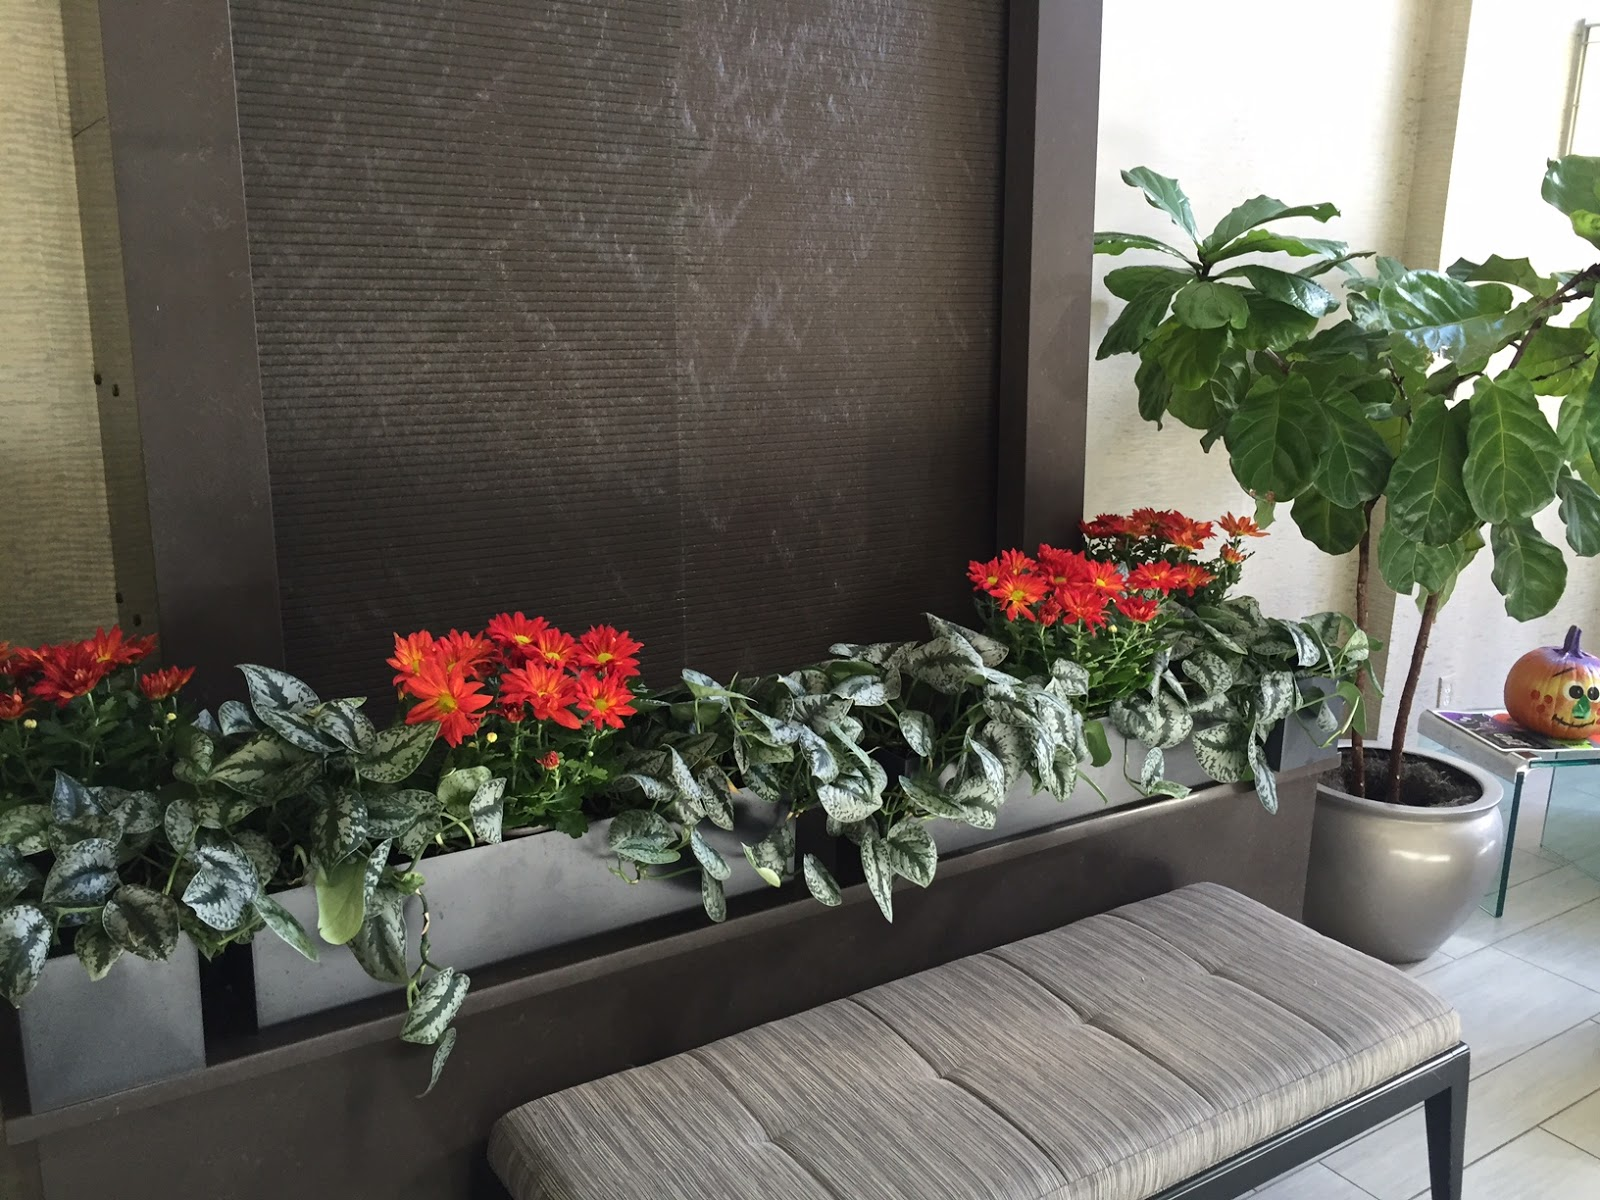 Acton Ma Tropical Plant Care Anf Flowers; Acton Mainterior Landscape Design;